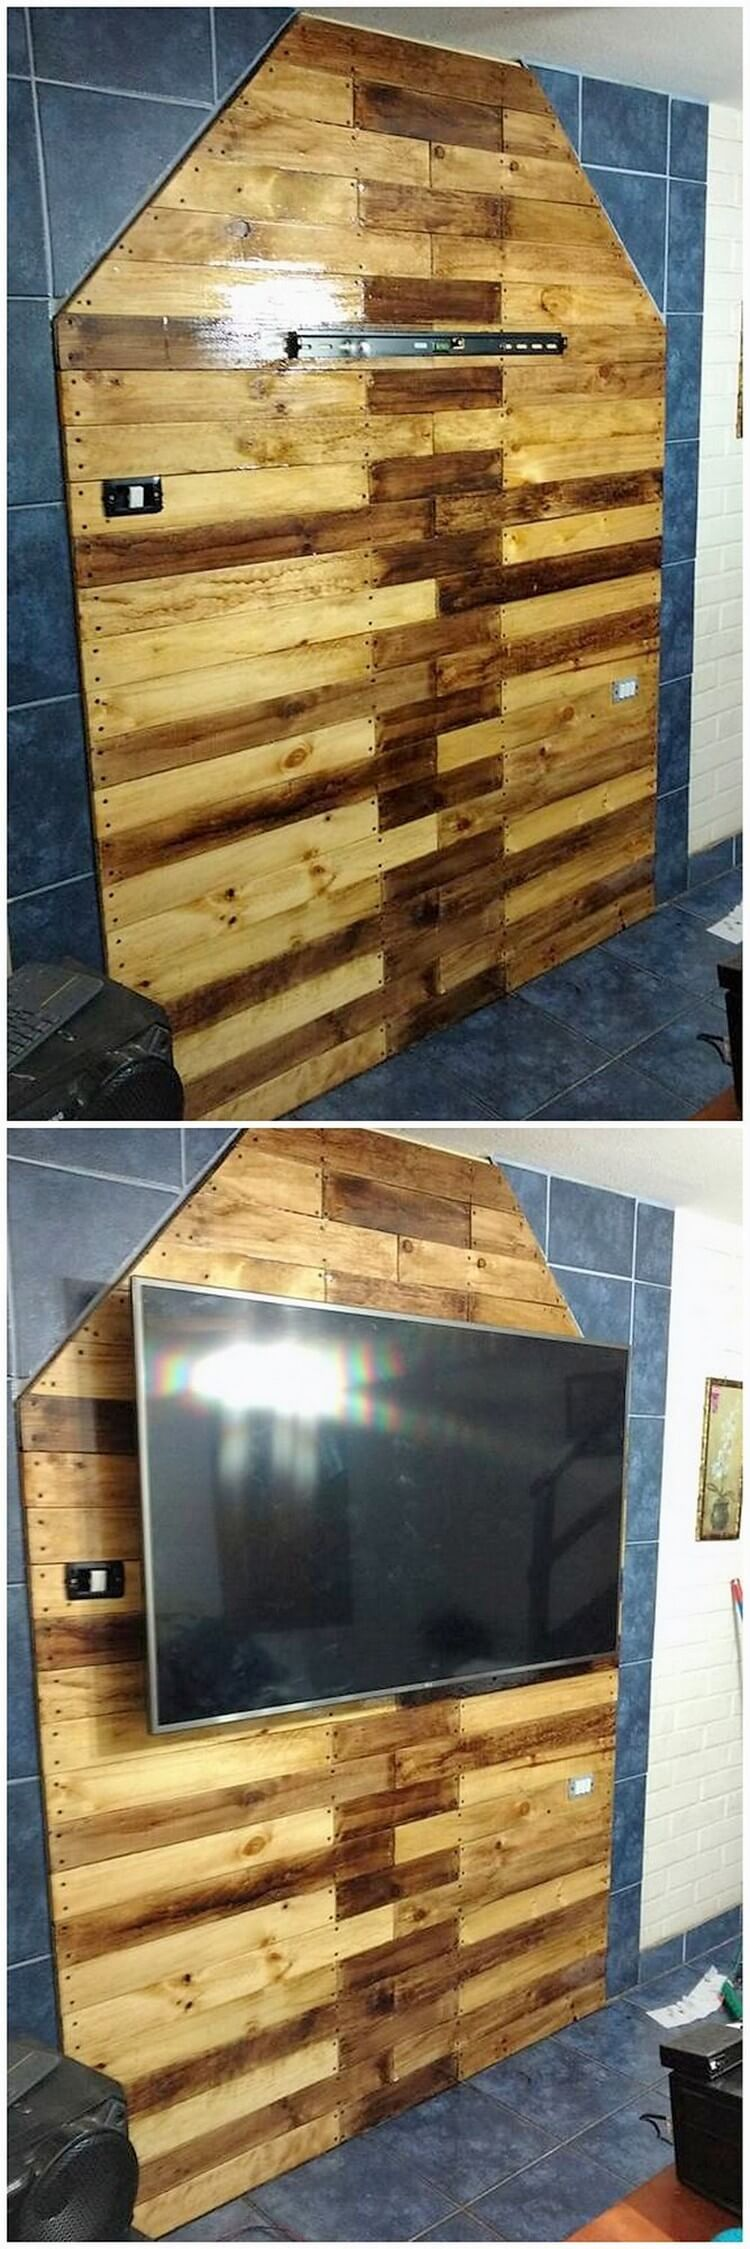 Pallet Wall Paneling : Excellent diy ideas with old shipping pallets pallet